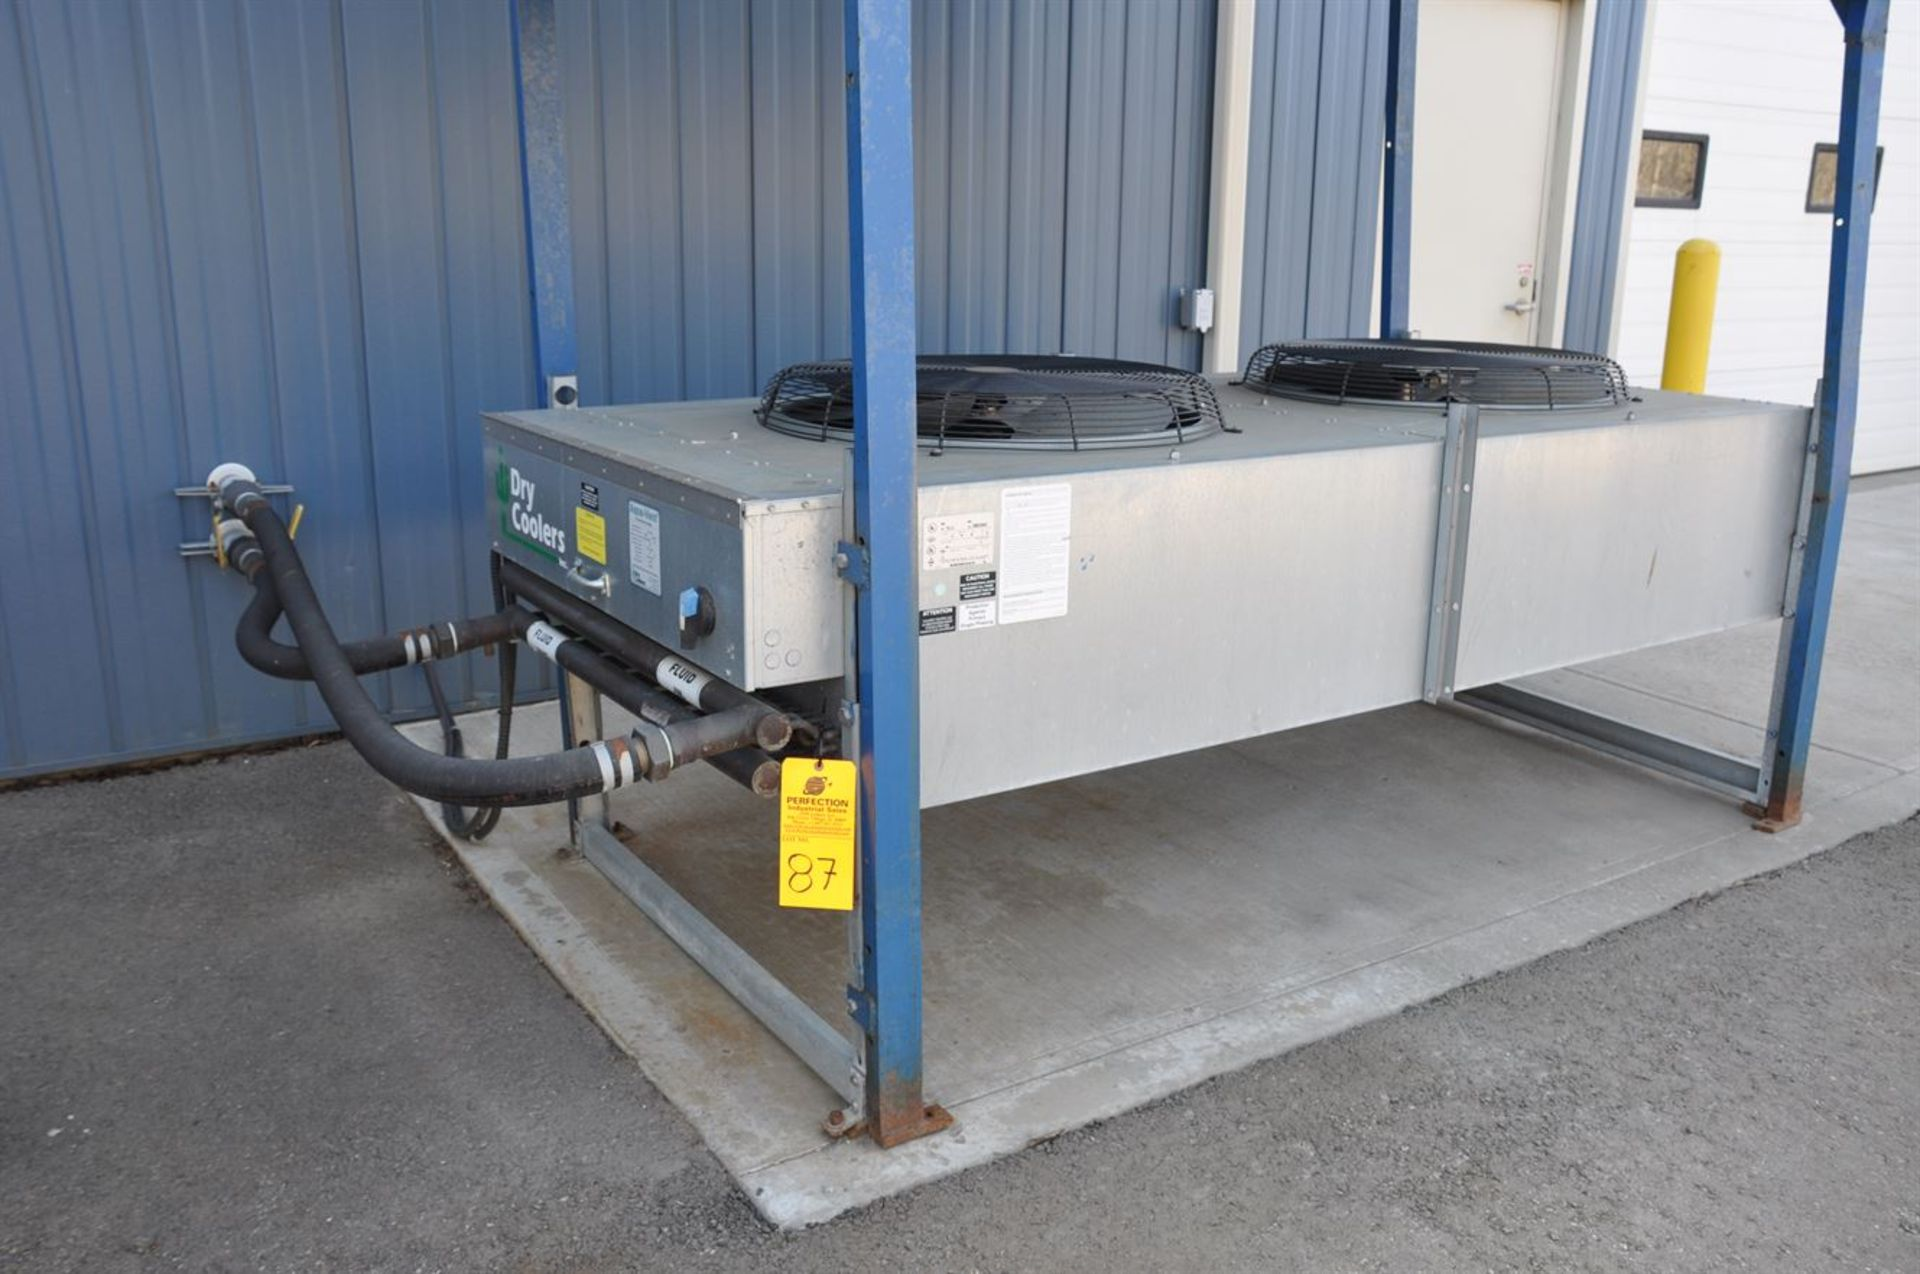 2012 BONE FRONTIER COMPANY CNC TS5L 75 3-10SUM Induction Power Stress Relieving Unit, s/n 730, w/ - Image 6 of 6